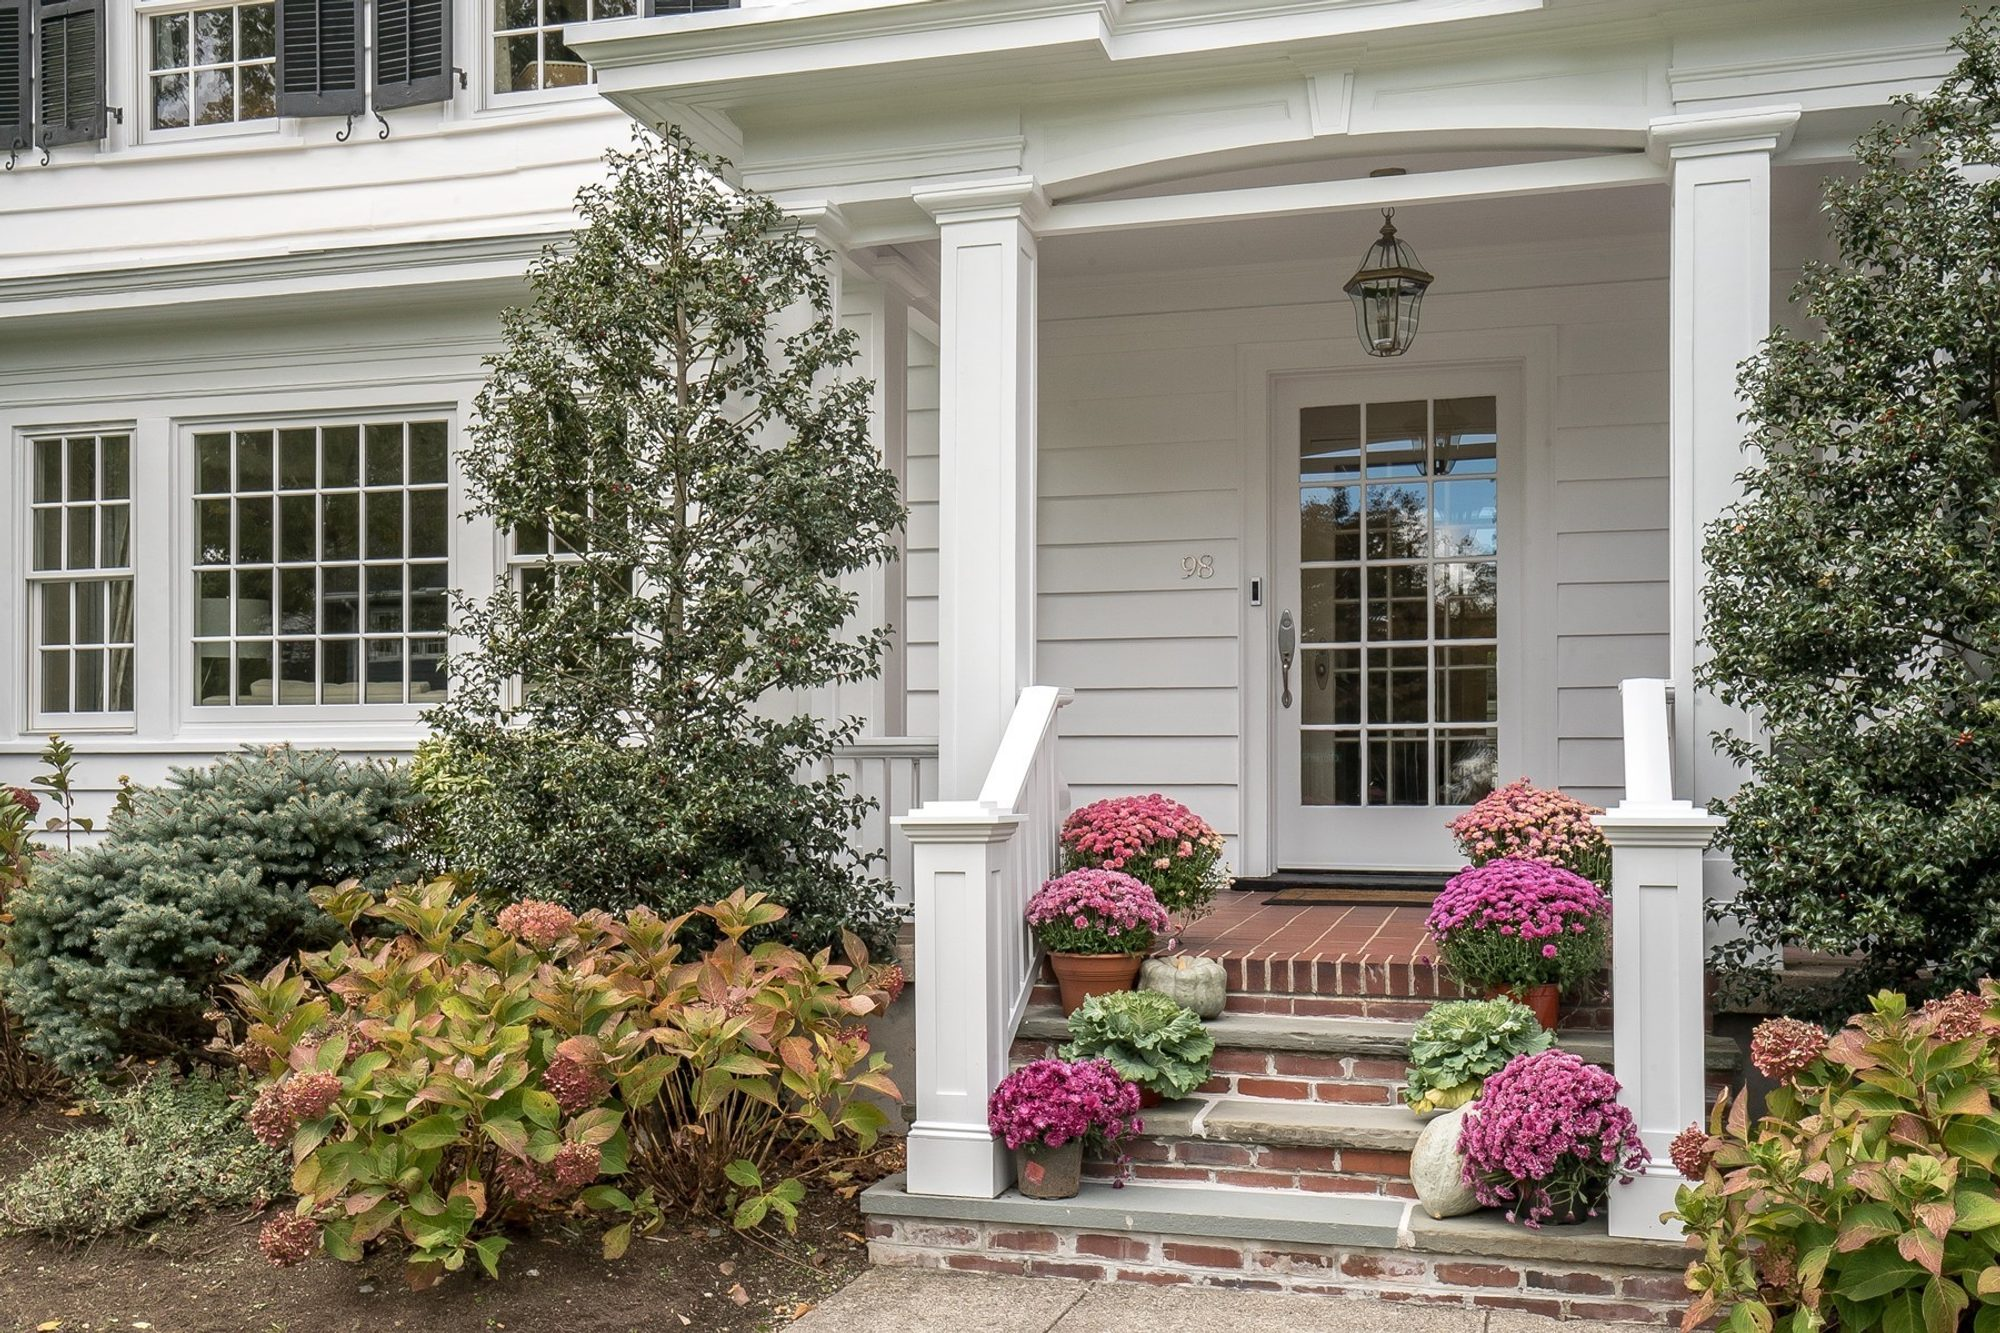 Classically styled red brick front porch floor with white siding,columns and railings. Thick cement grout.